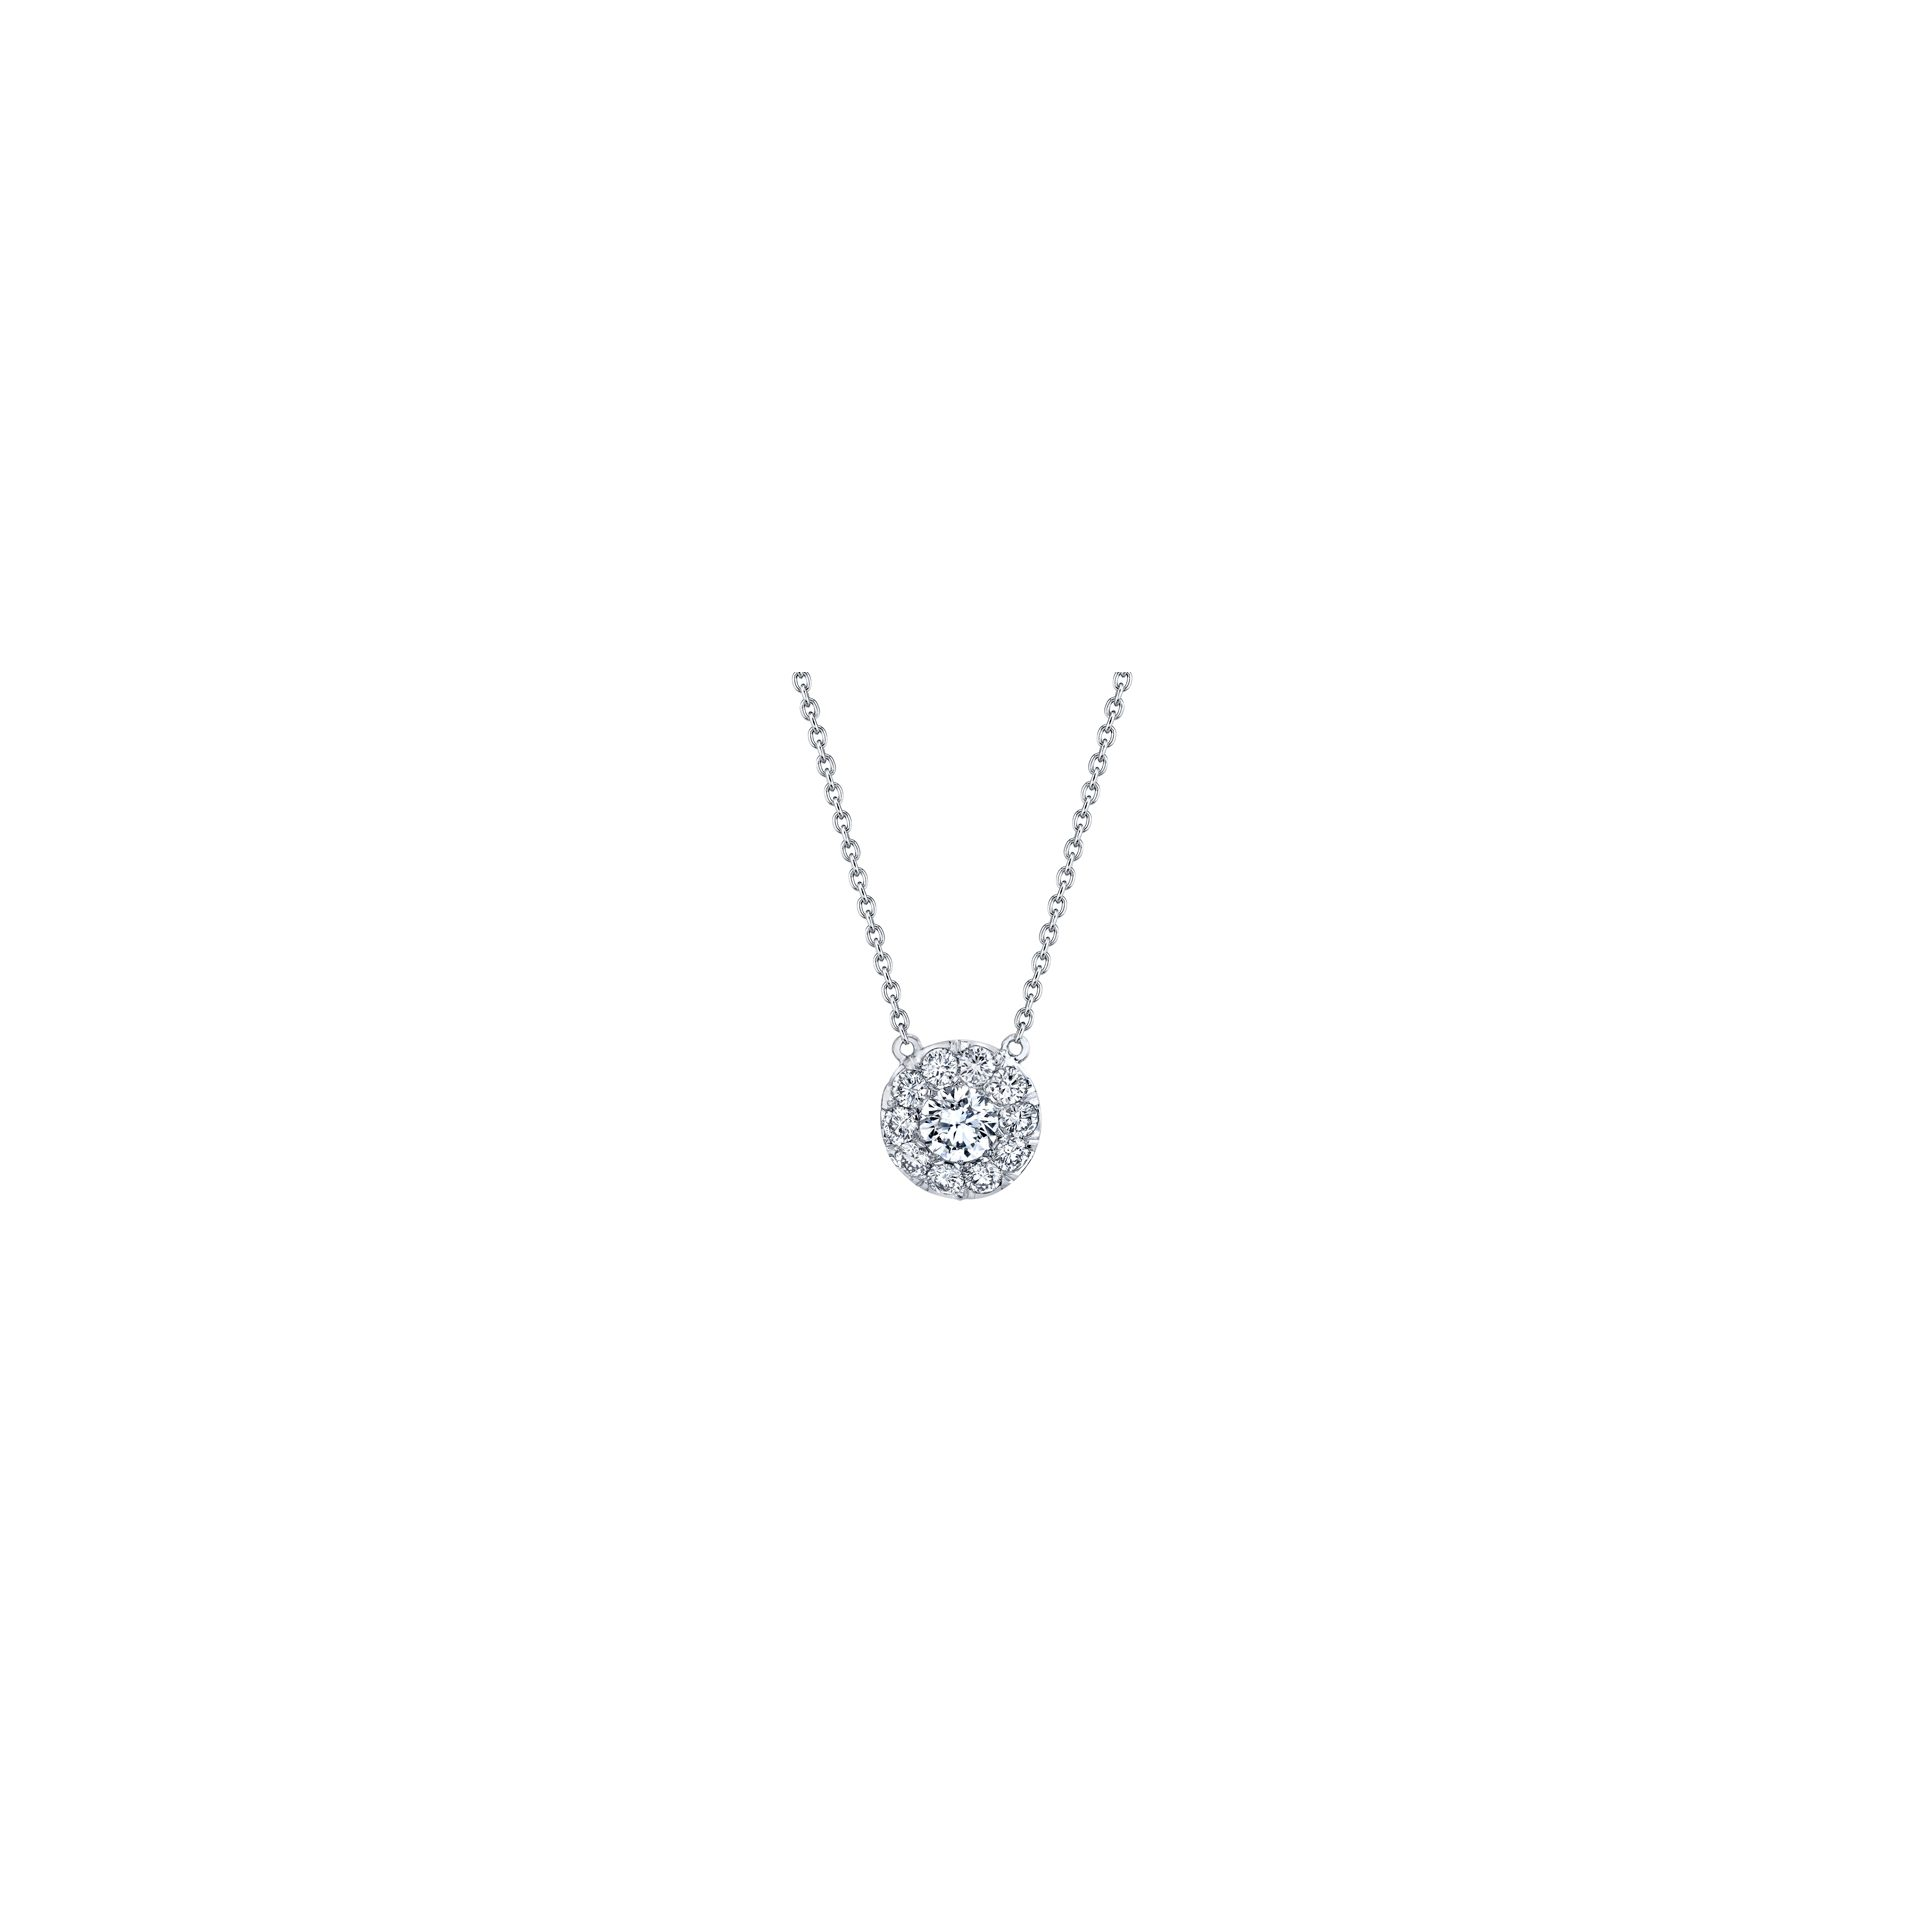 Lucile Round Brilliant Seamless Solitaire™ Diamond Pendant in 18k White Gold Front View by Oui by Jean Dousset